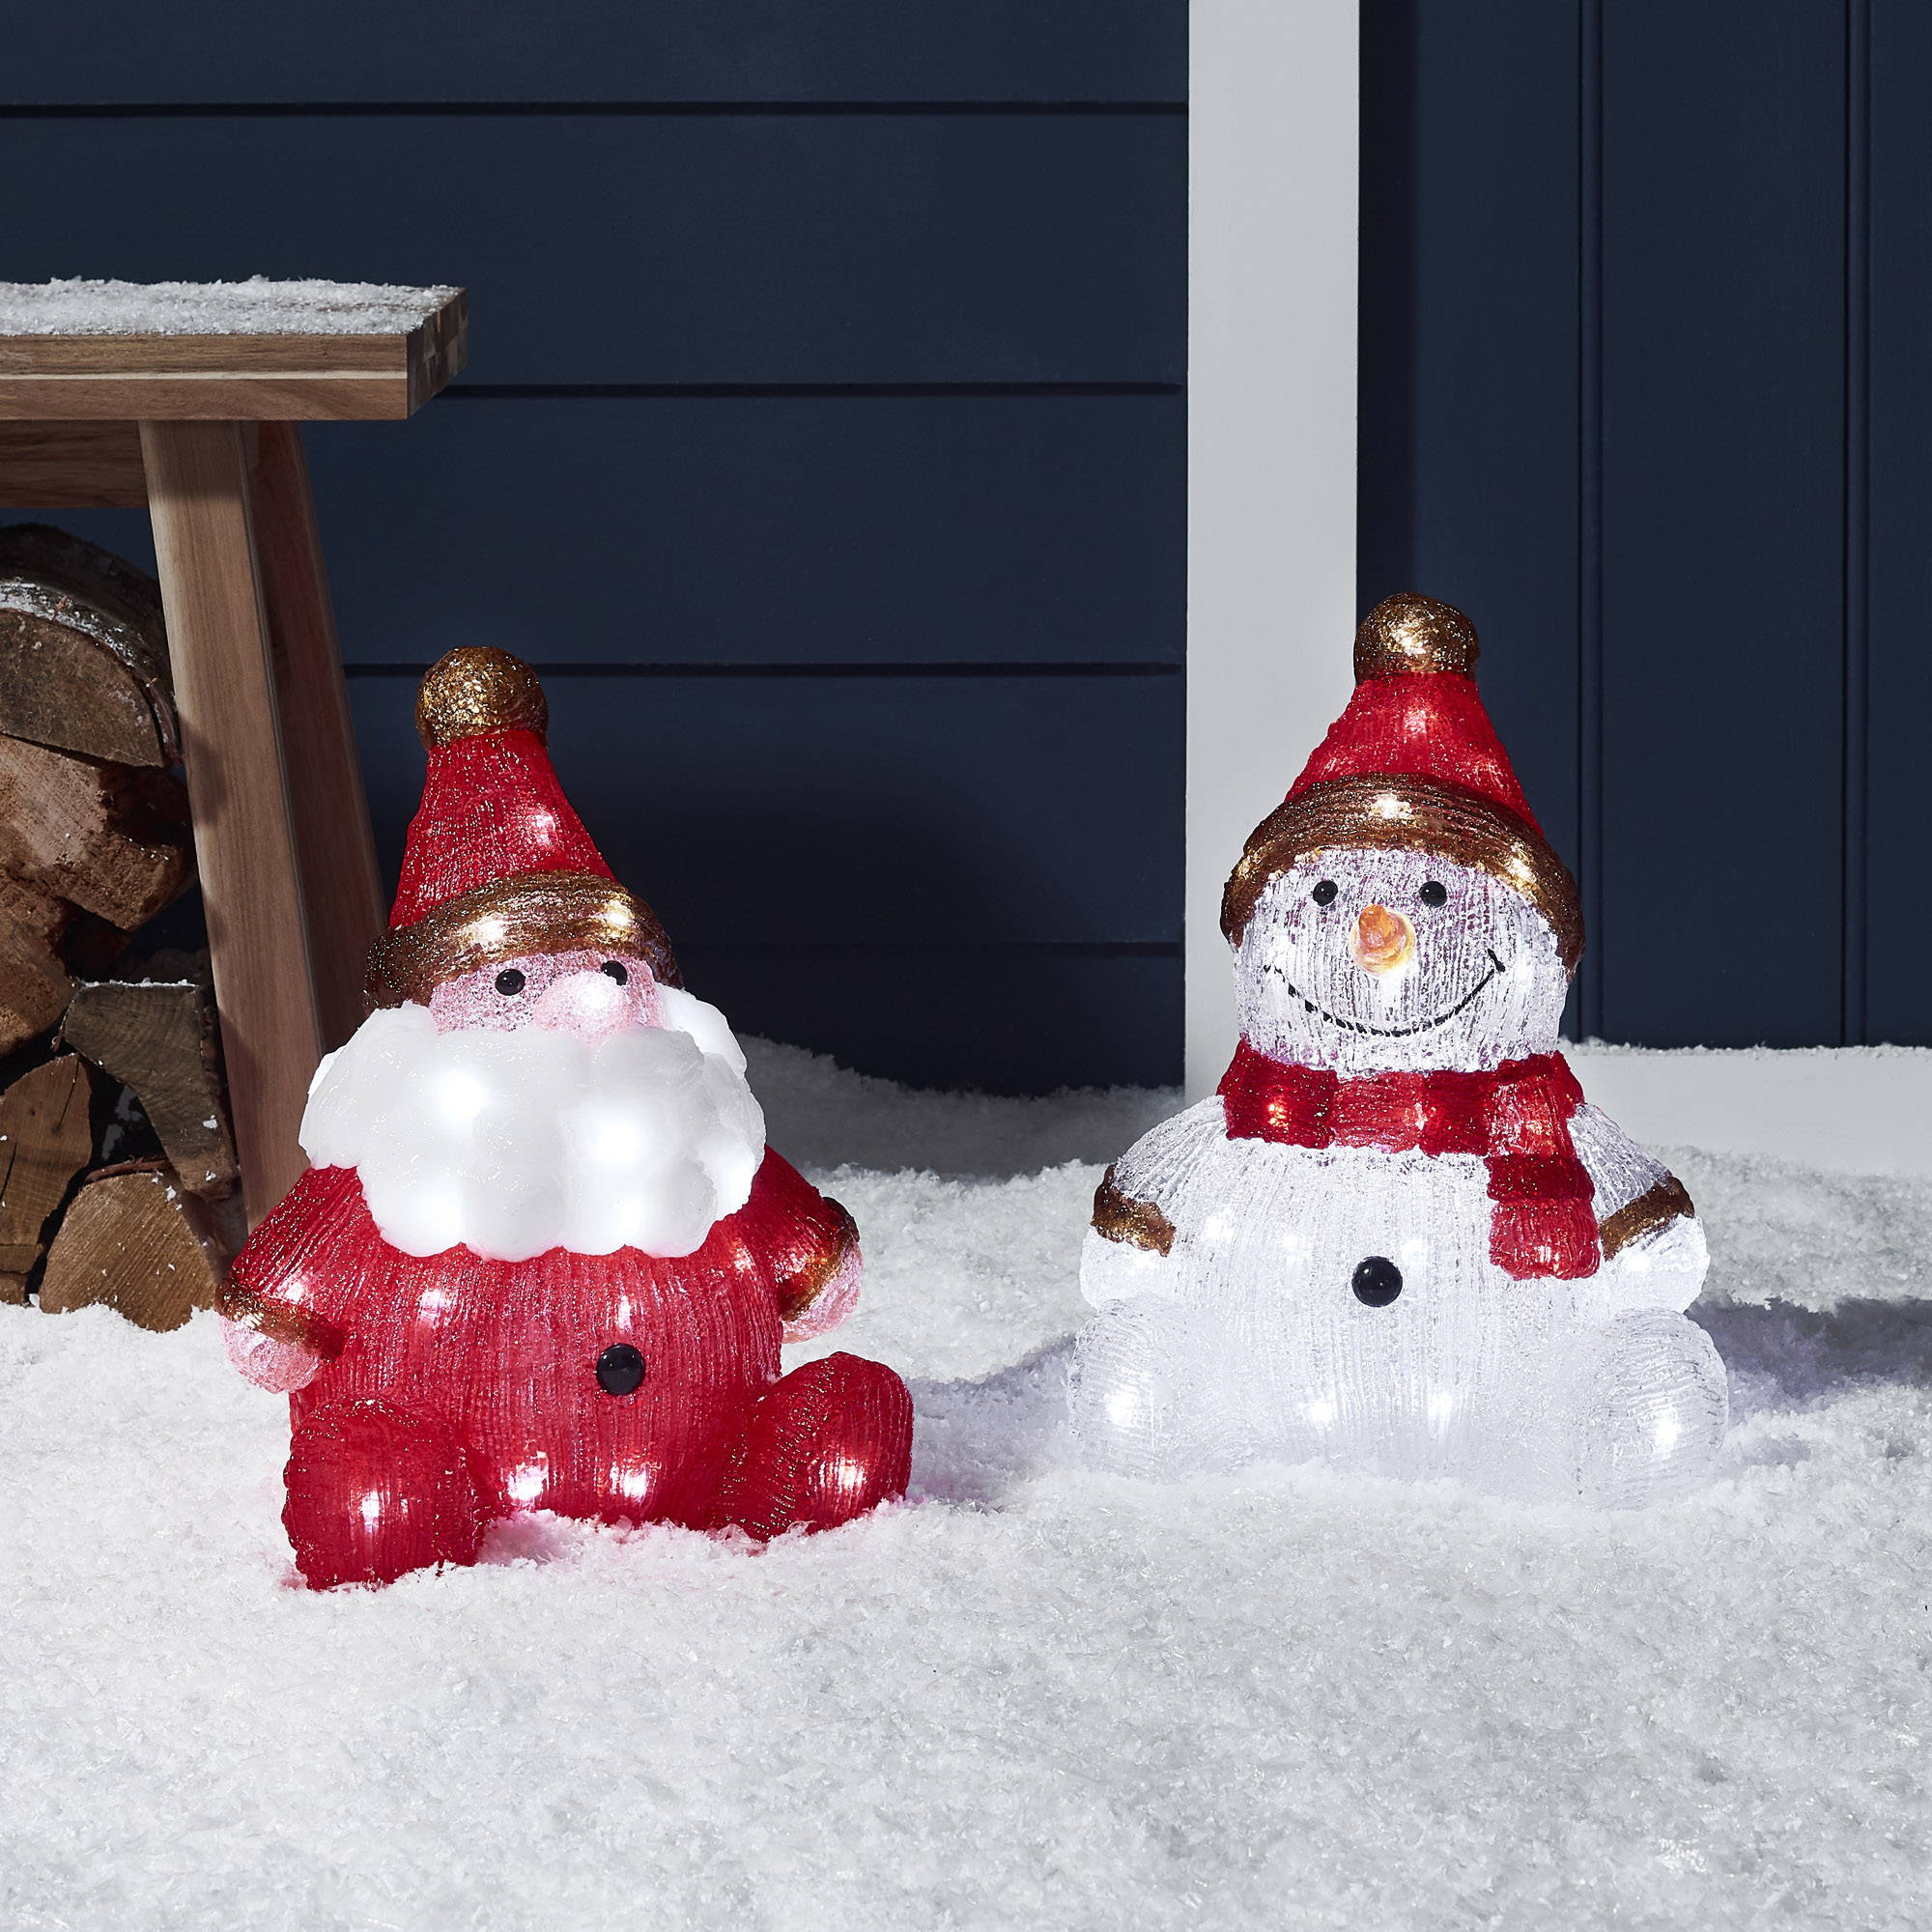 Acrylic light up Snowman and Santa Christmas figures for the outdoors